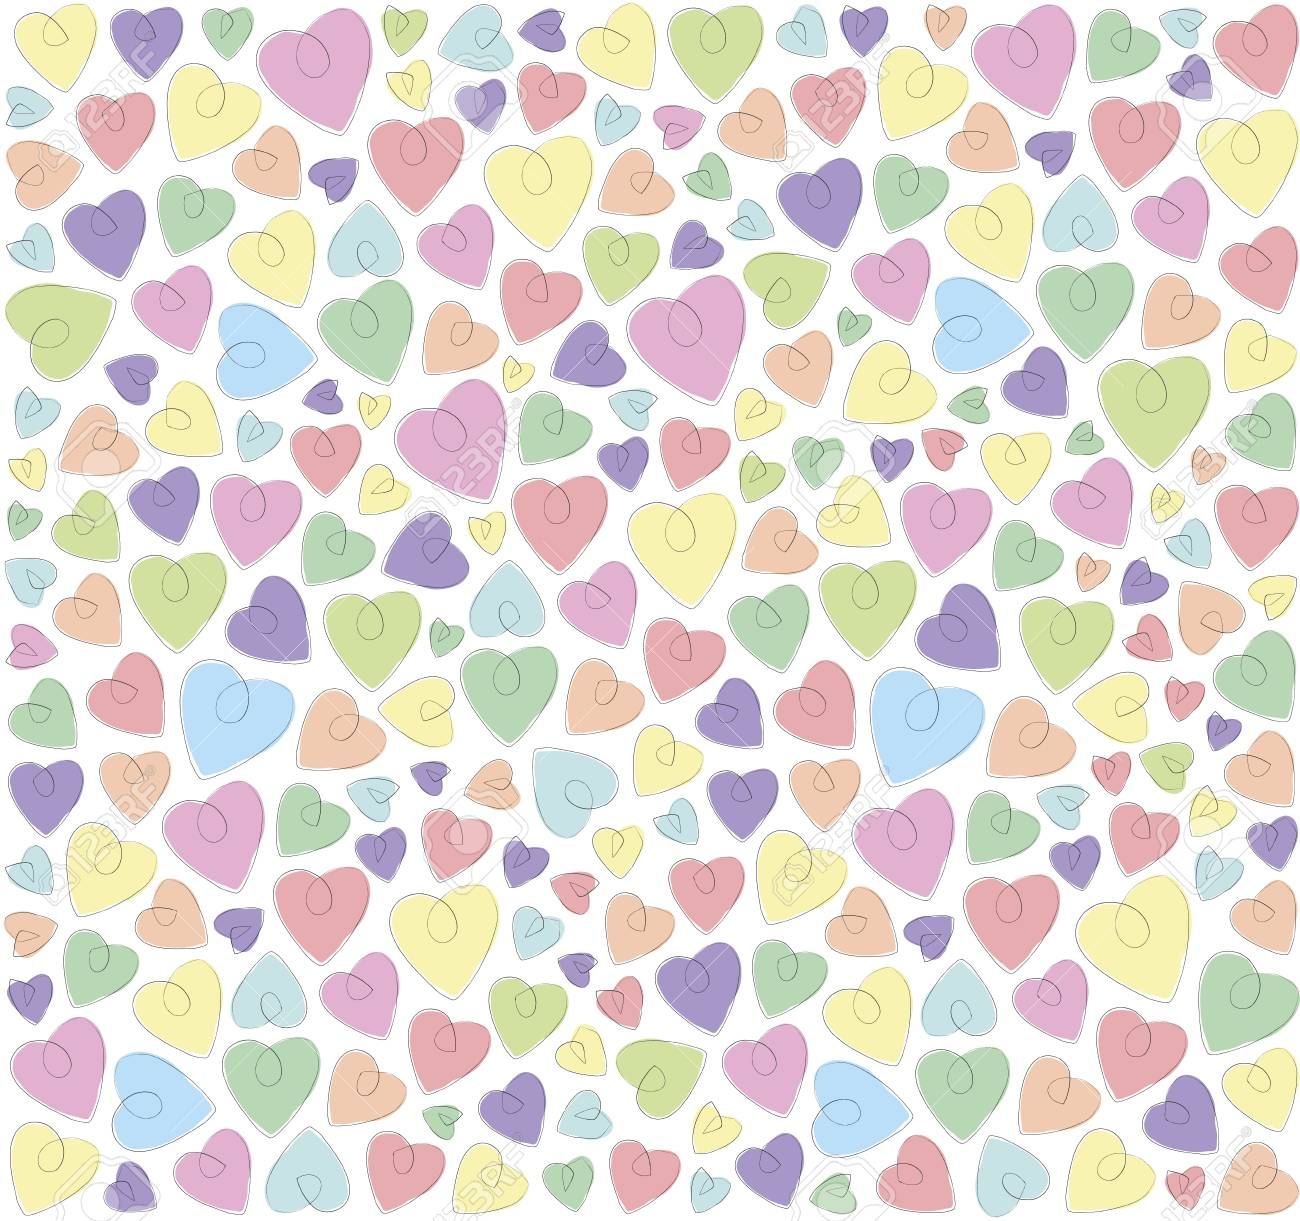 hearts on a white background Stock Vector - 18826927